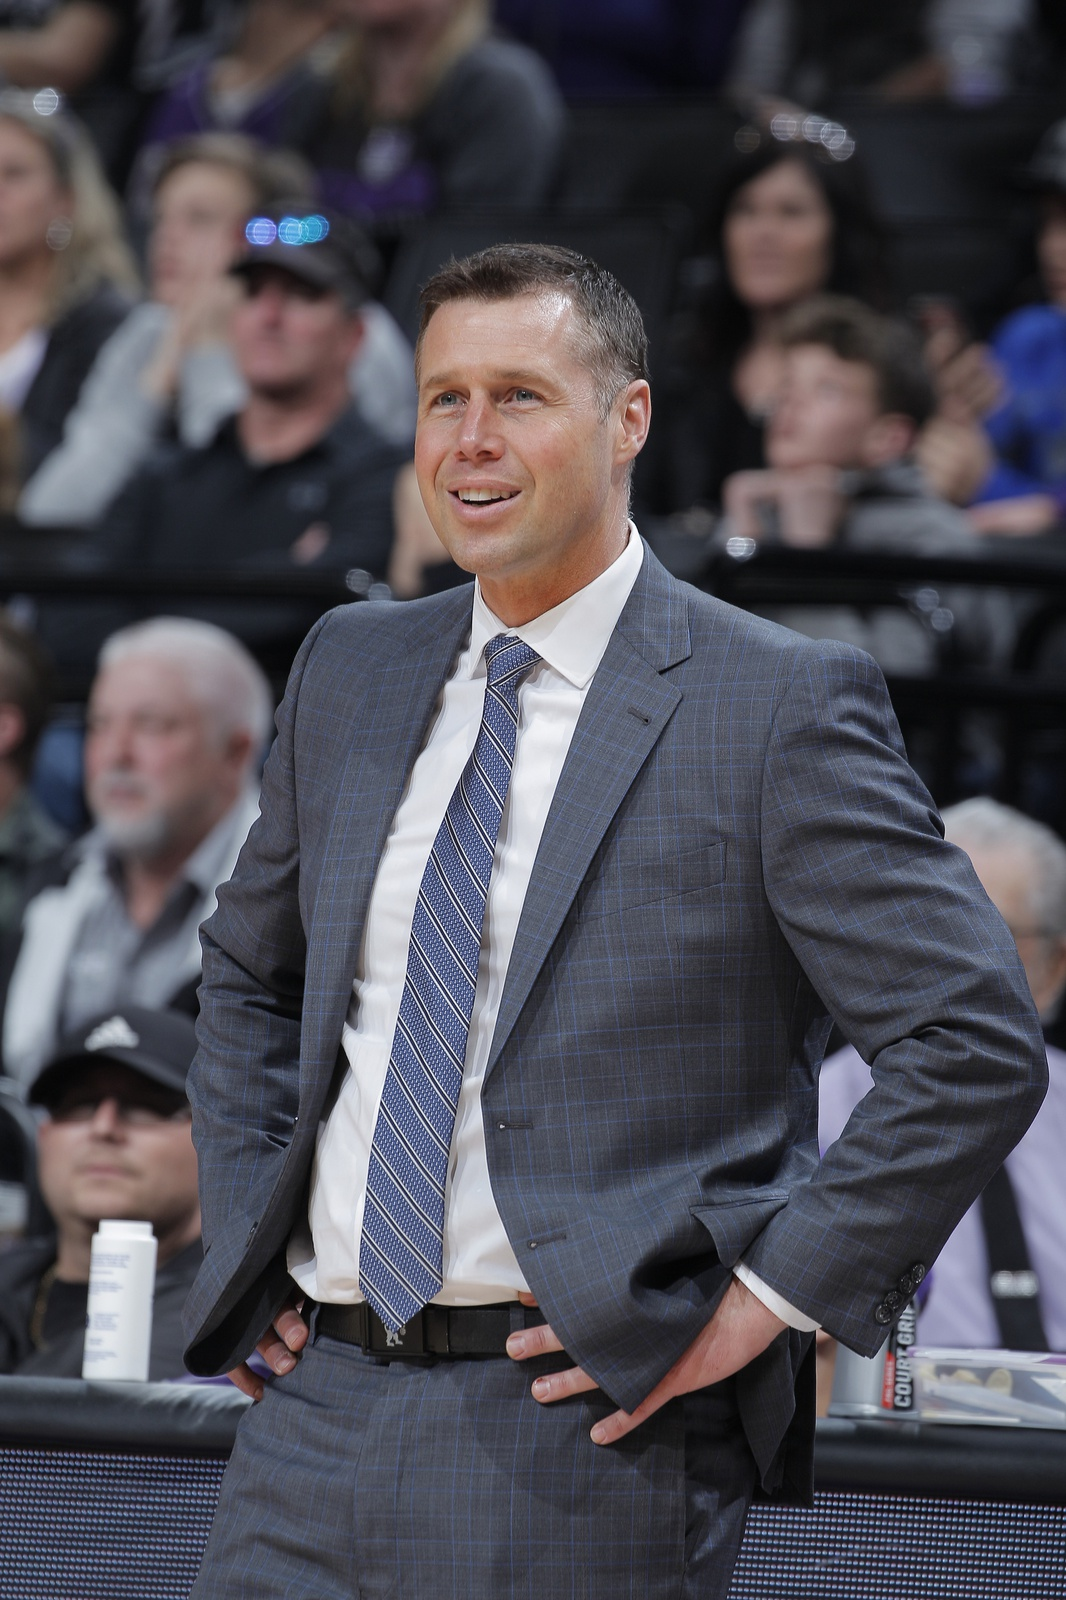 Head coach Dave Joerger of the Sacramento Kings looks on during the game against the Phoenix Suns on March 23, 2019 at Golden 1 Center in Sacramento, California.